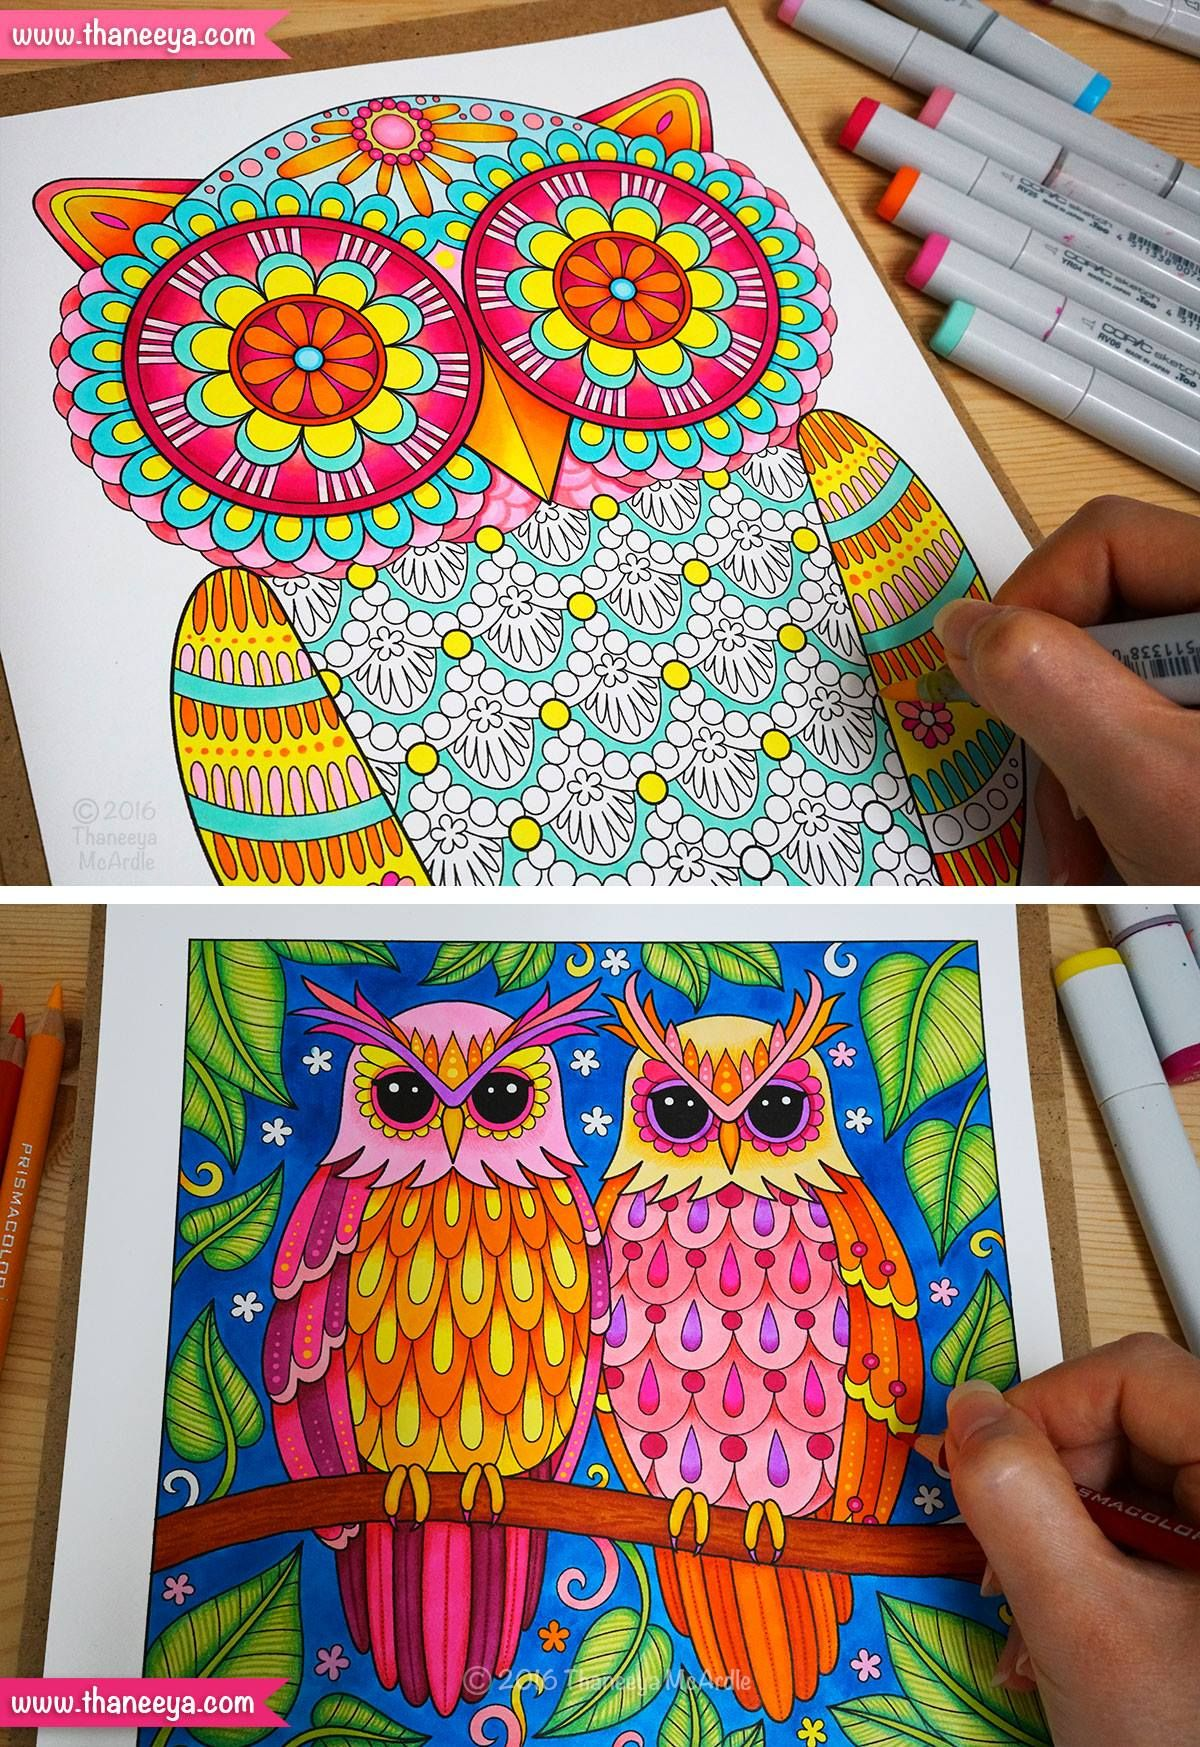 Groovy Owls Coloring Book By Thaneeya Mcardle Owl Coloring Pages Coloring Books Polish Folk Art